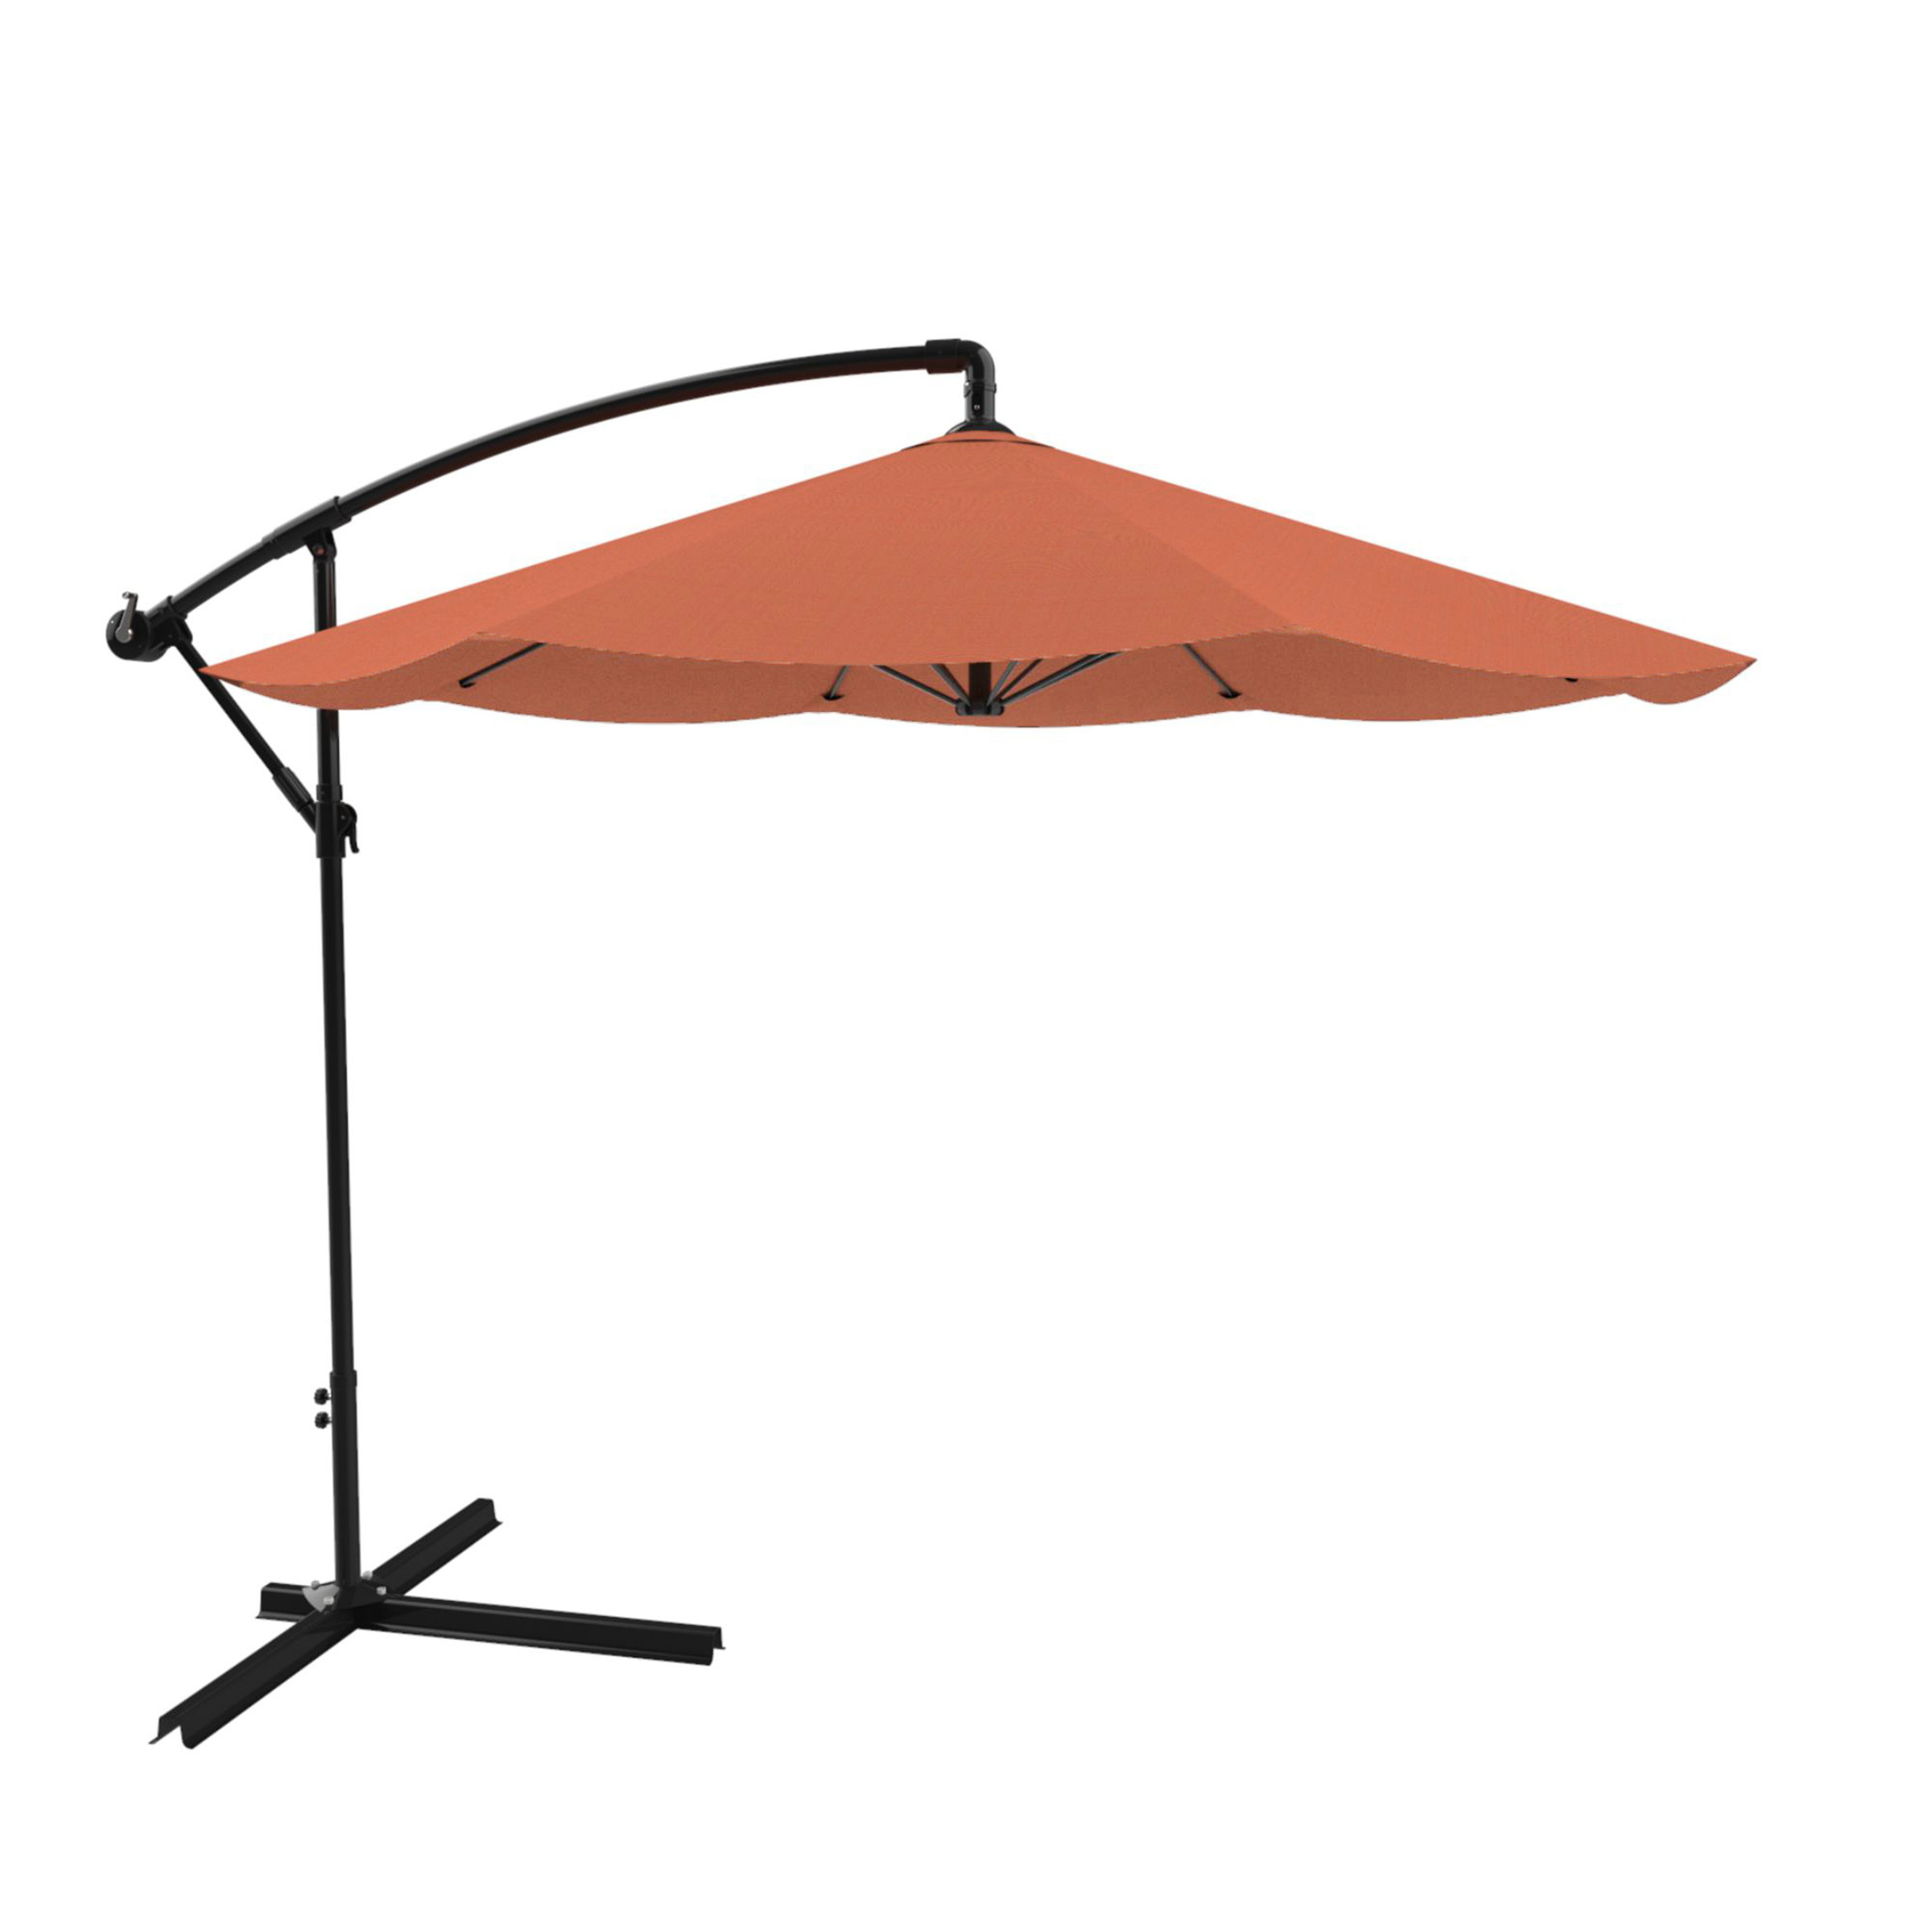 Patio Umbrella, Cantilever Hanging Outdoor Shade, Easy Crank And Base For  Table, Deck